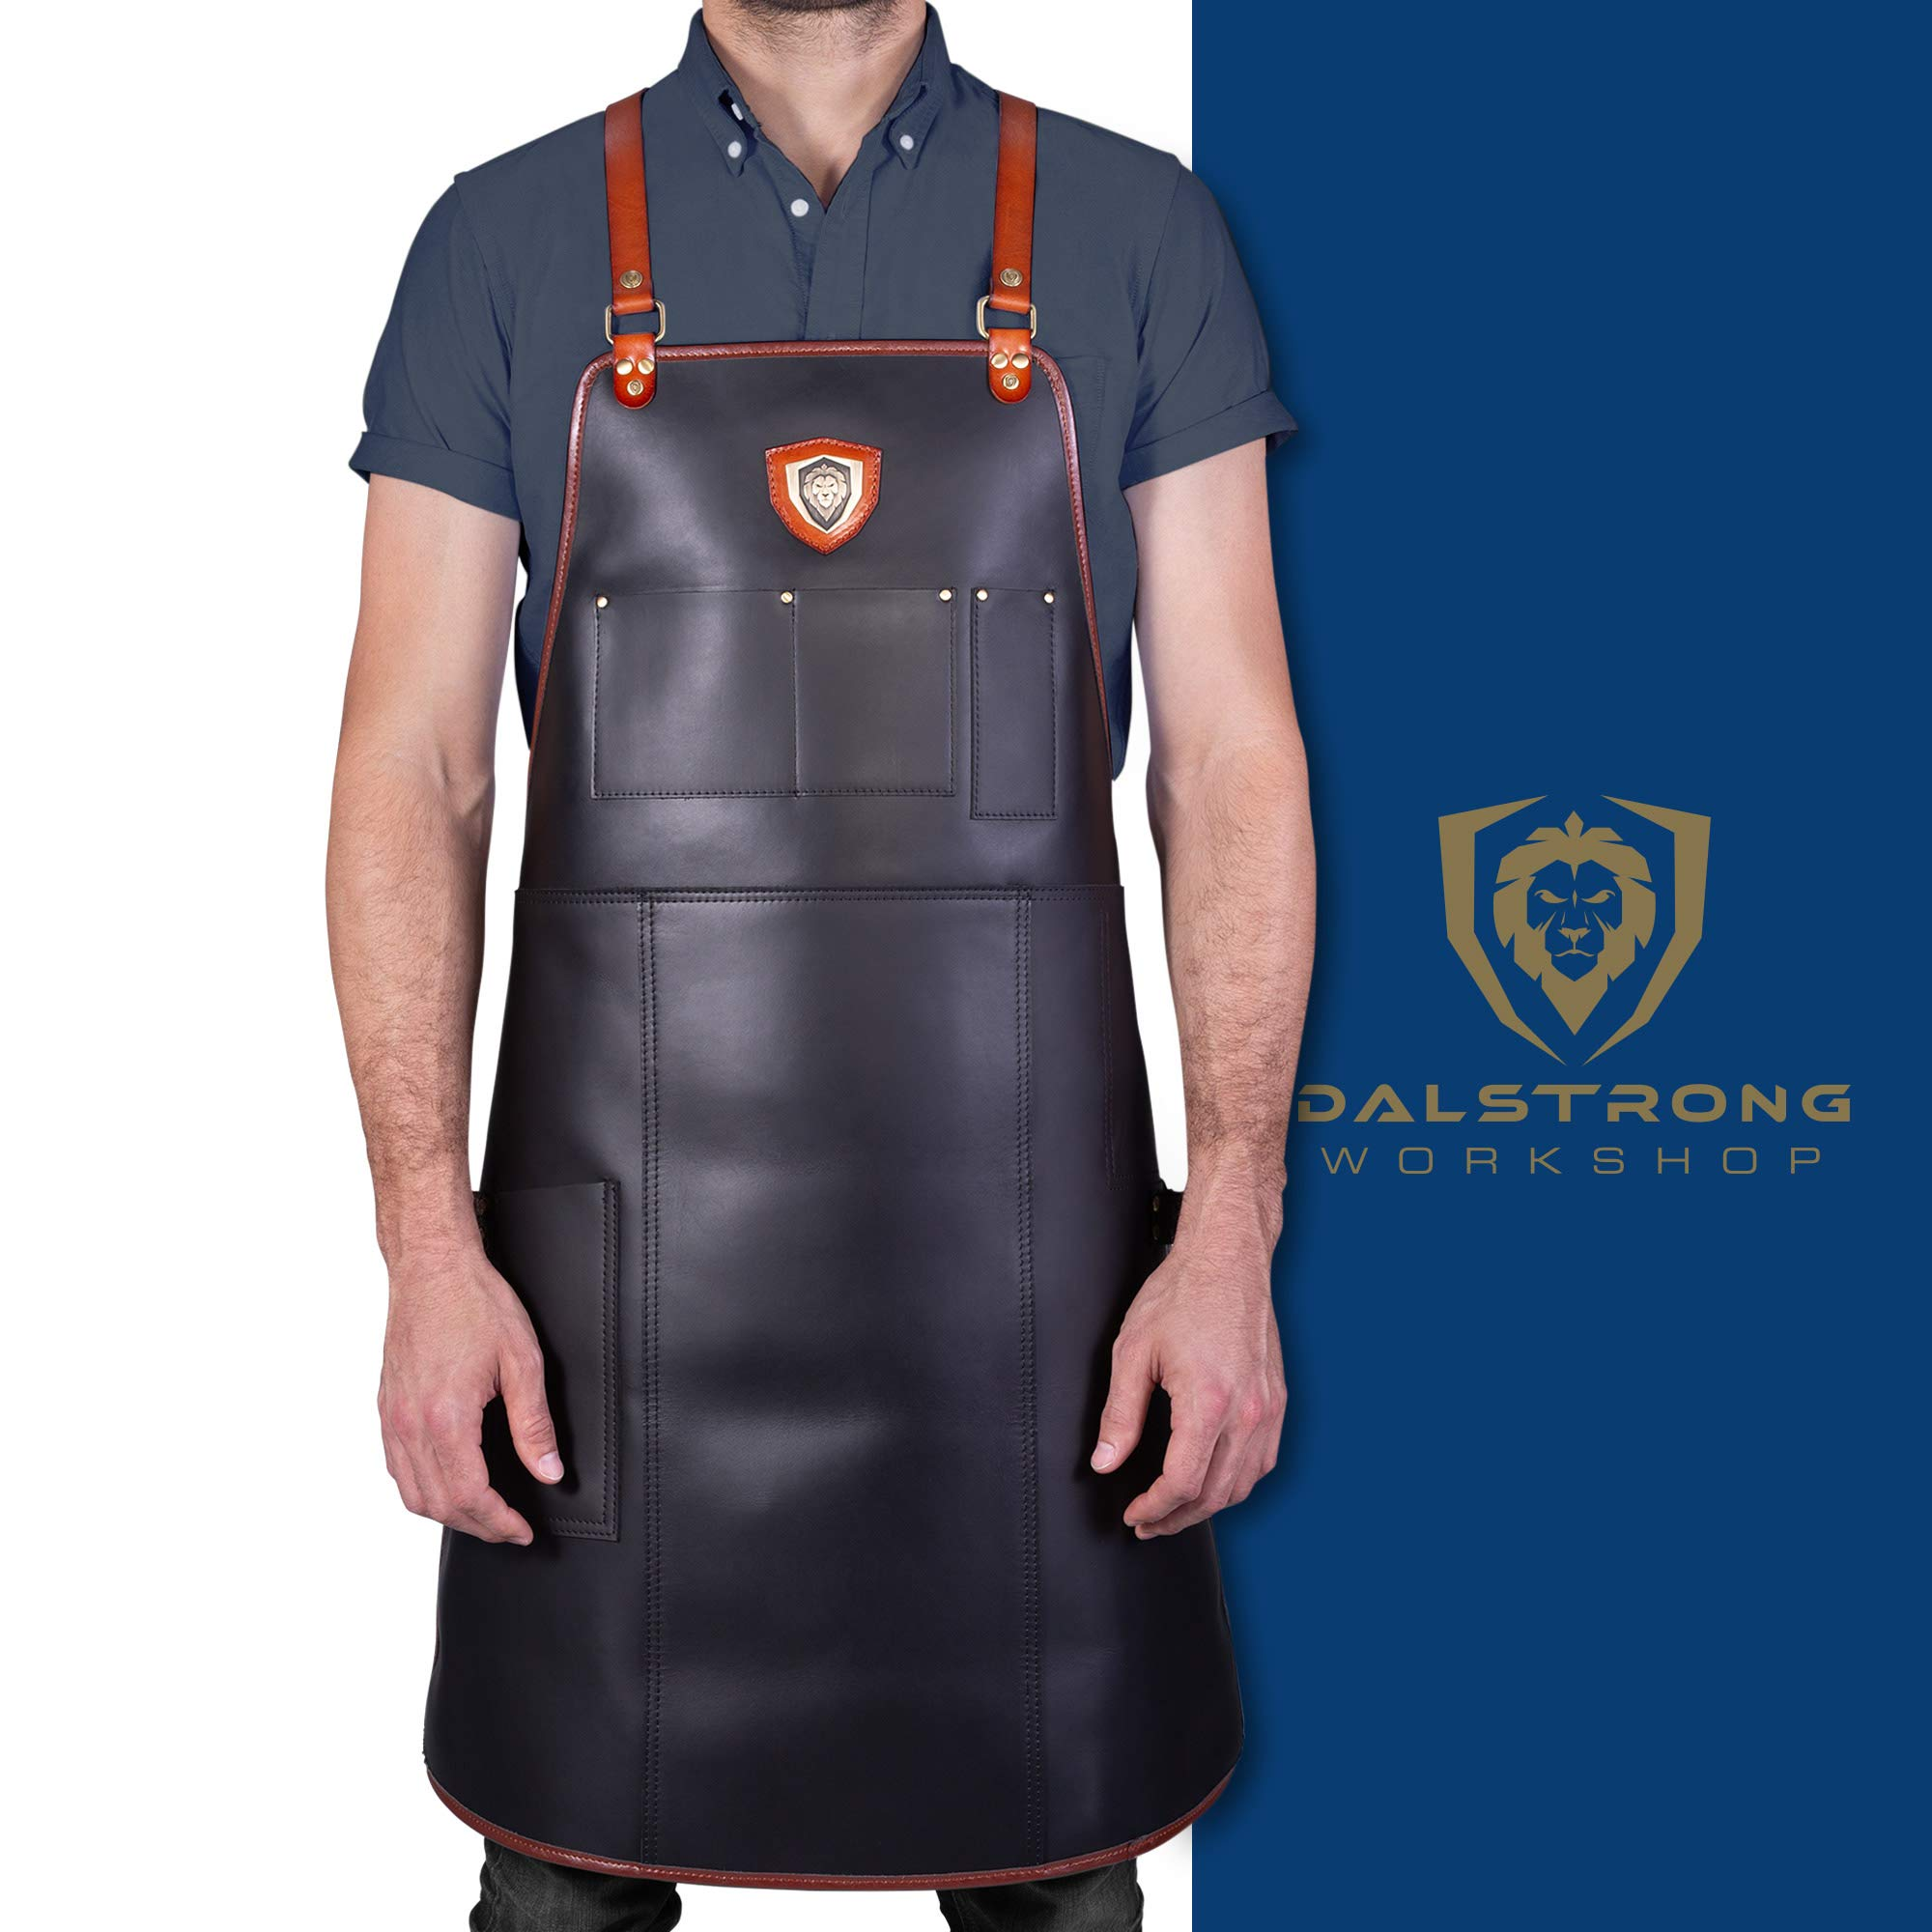 Dalstrong Professional Chef's Kitchen Apron - The Culinary Commander Top-Grain Leather - 5 Storage Pockets + Towel & Tong Loop - Fully Adjustable Harness Straps - Heavy Duty